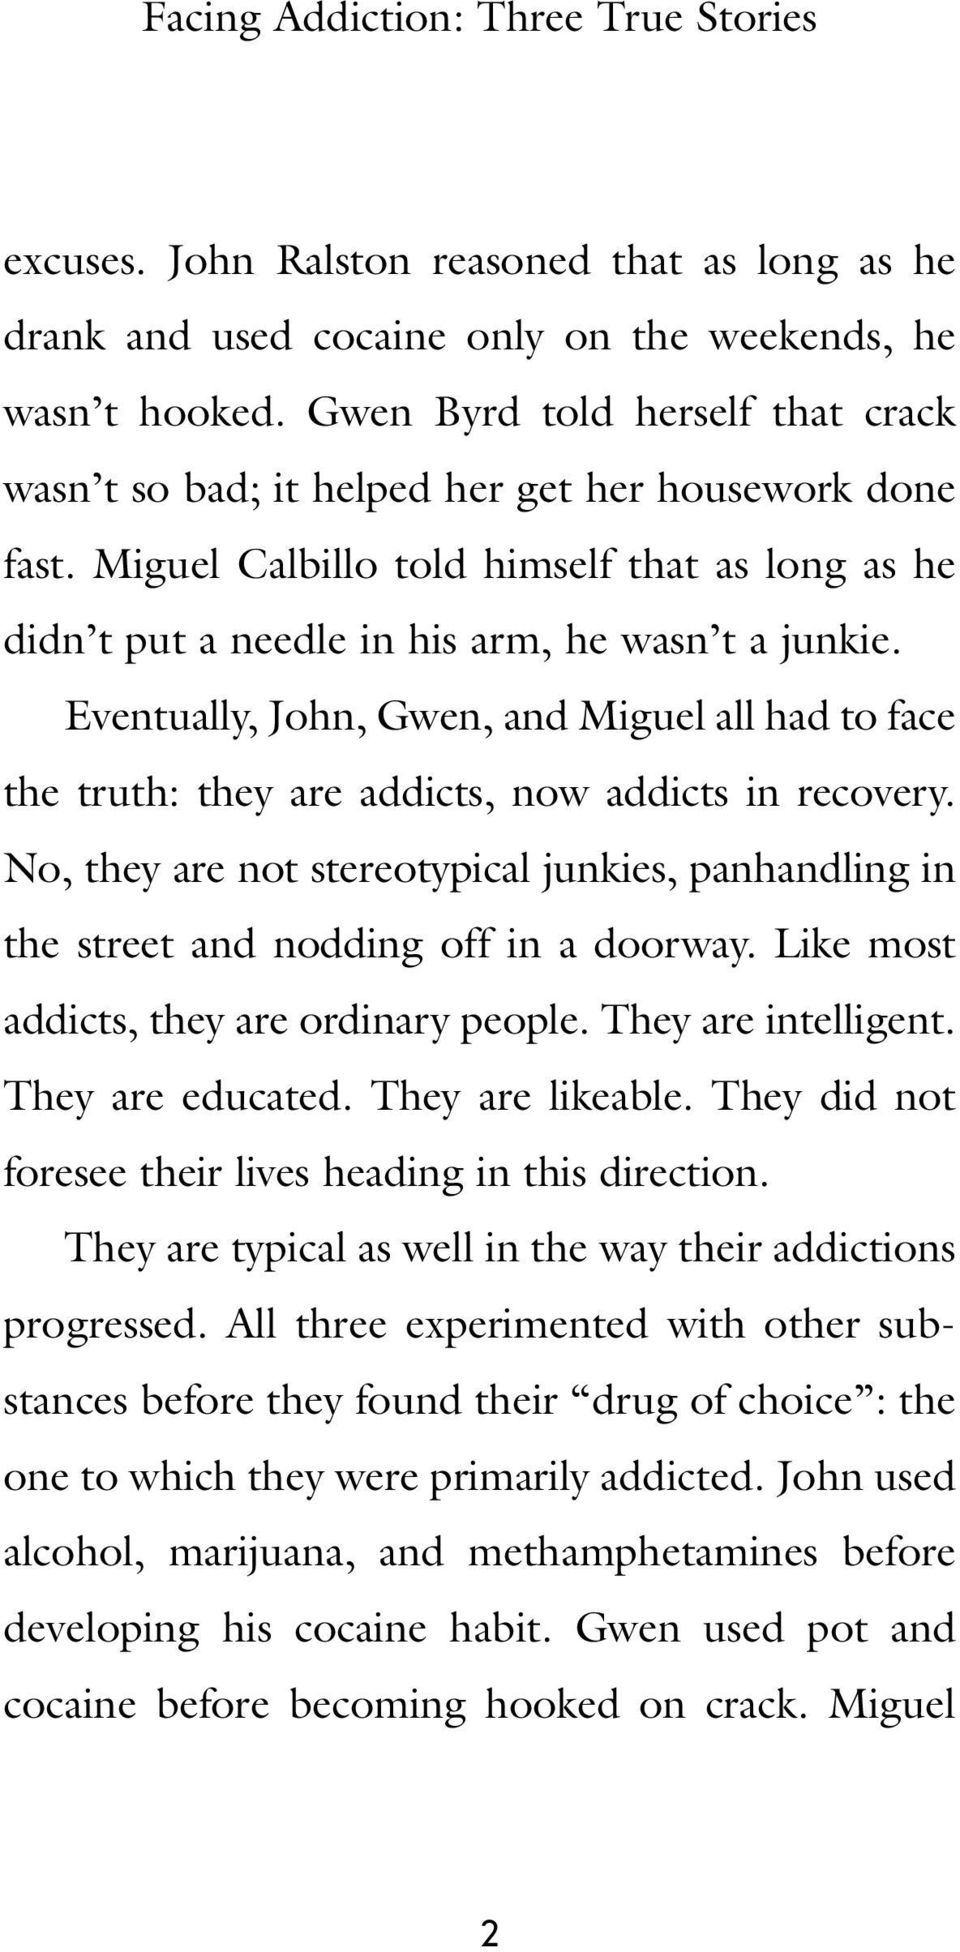 Eventually, John, Gwen, and Miguel all had to face the truth: they are addicts, now addicts in recovery. No, they are not stereotypical junkies, panhandling in the street and nodding off in a doorway.